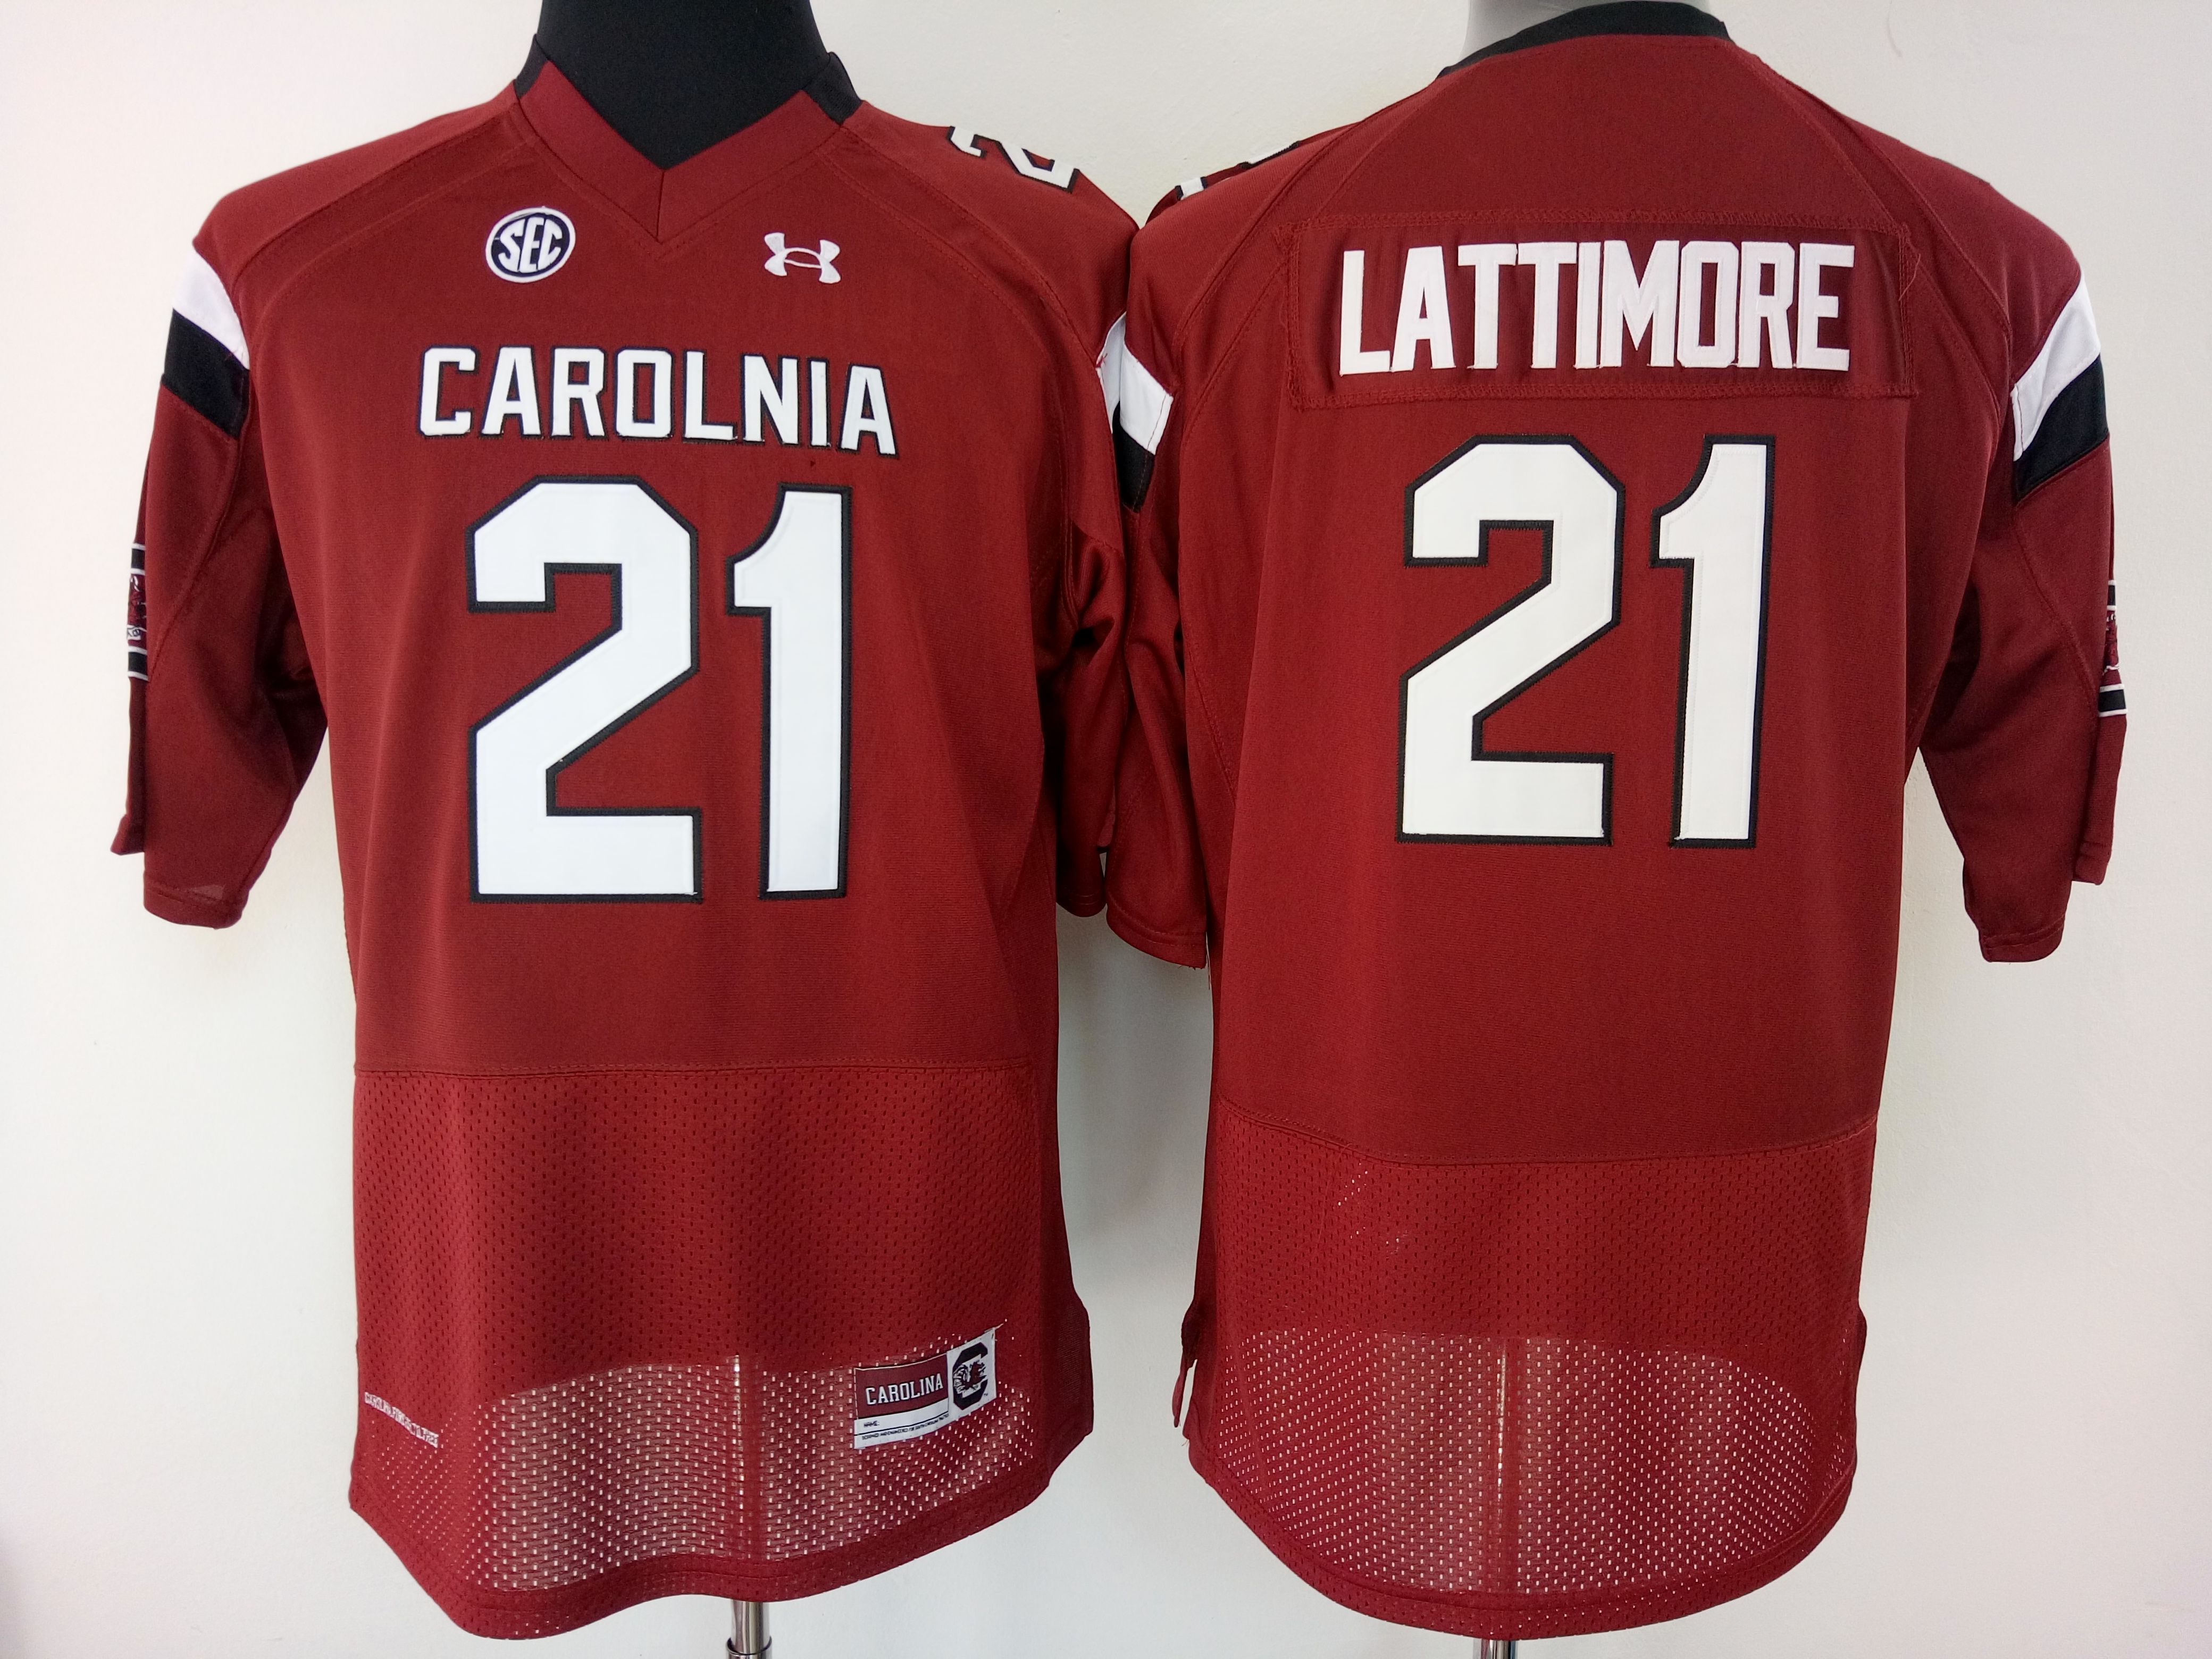 NCAA Womens South Carolina Gamecock Red 21 lattimore jerseys